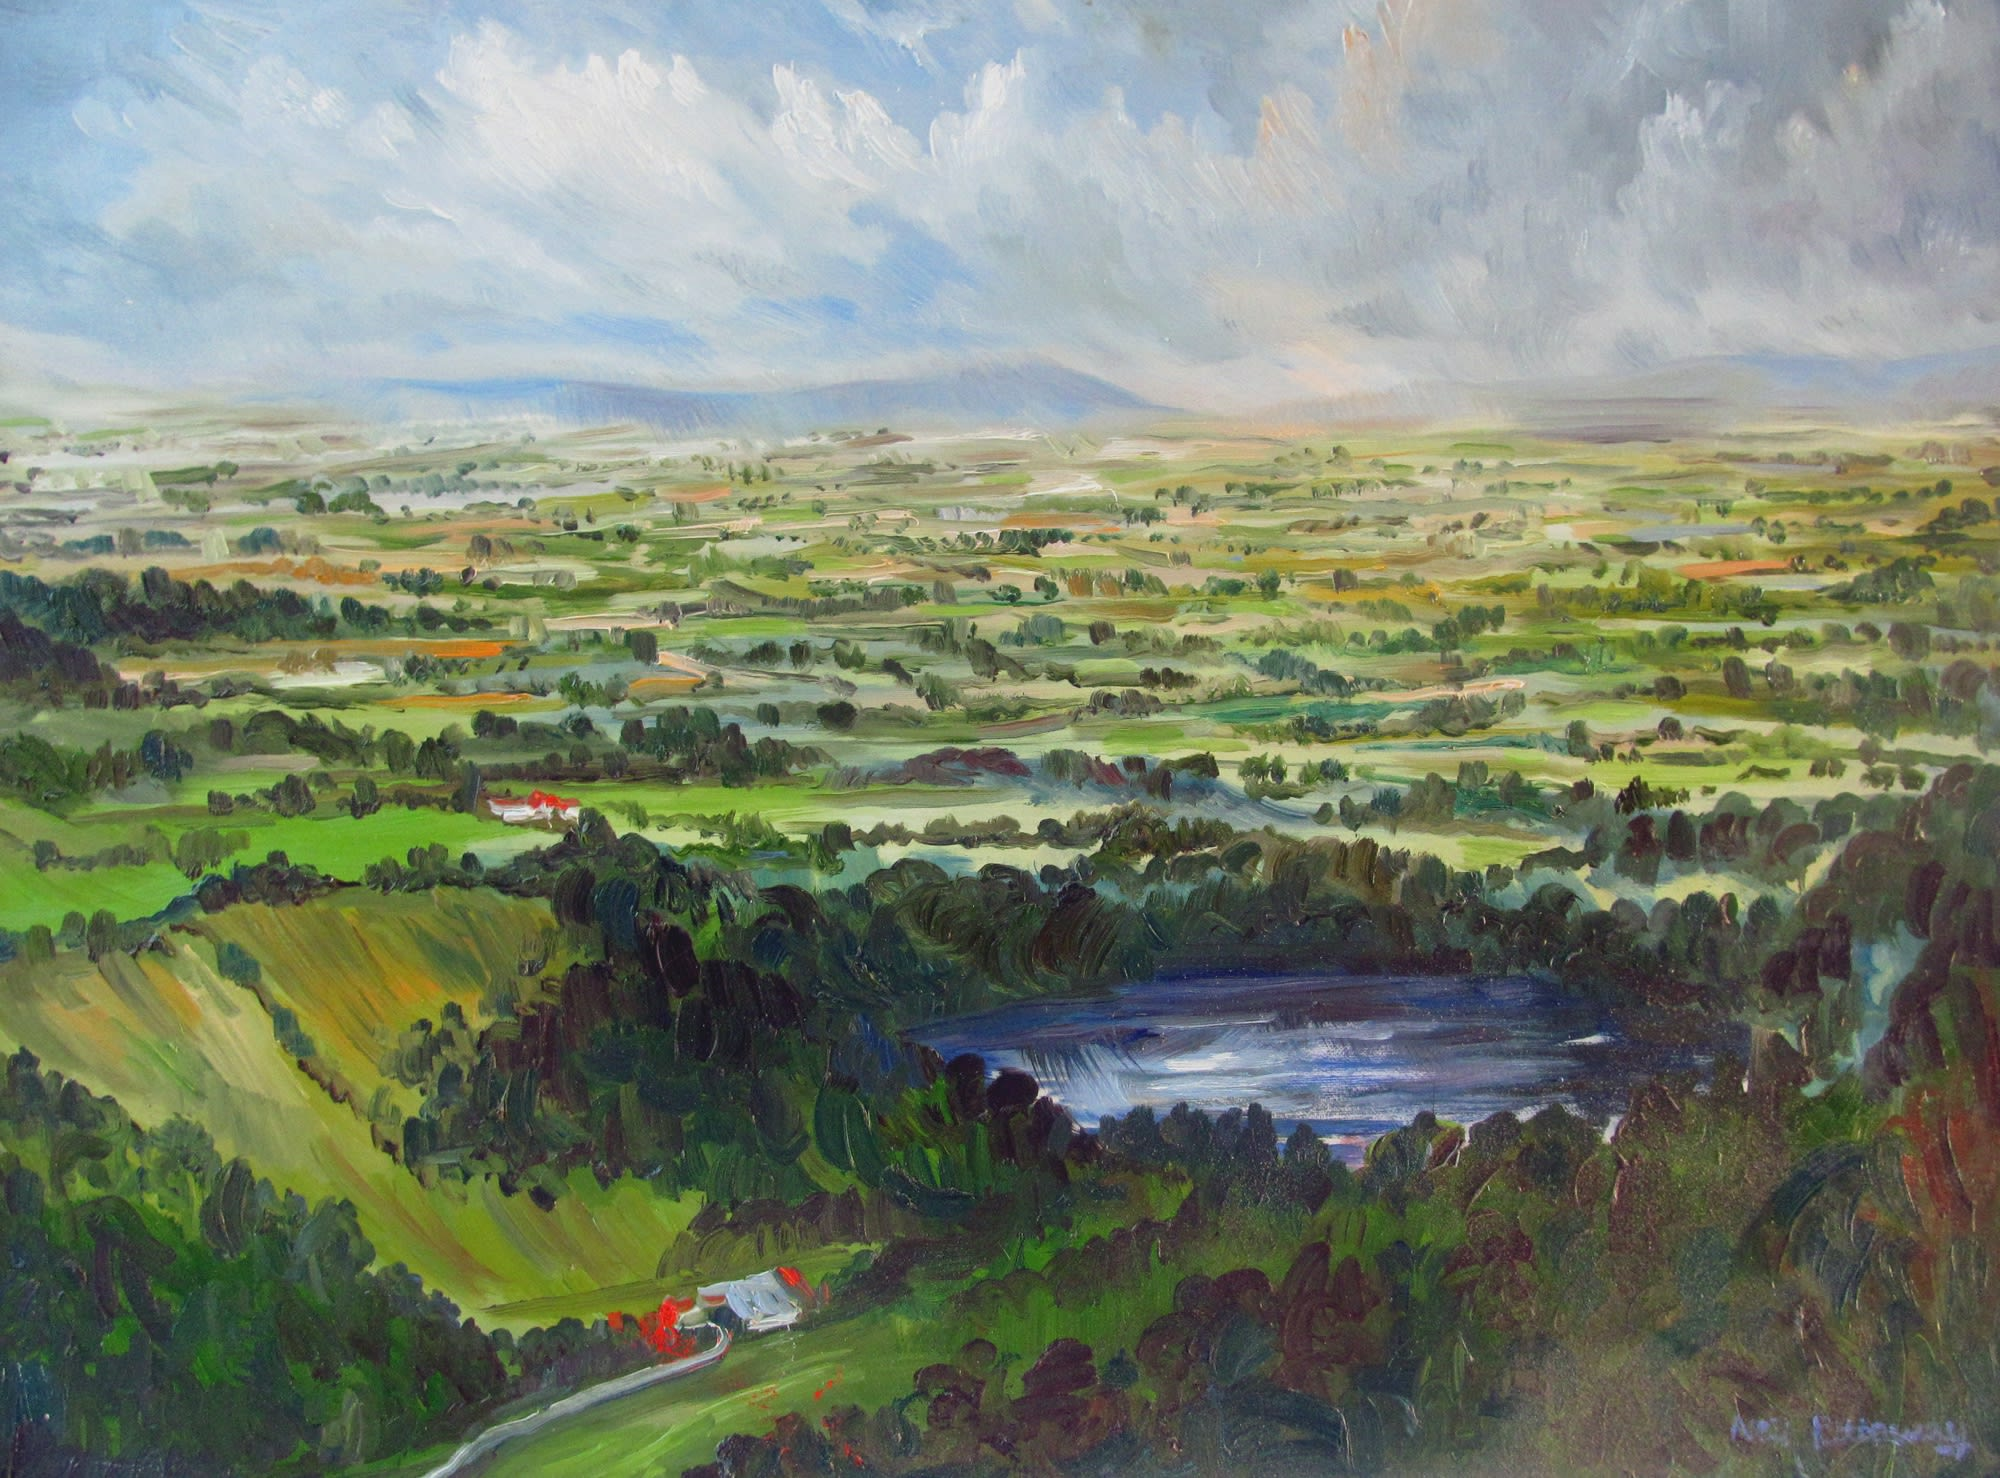 """<span class=""""link fancybox-details-link""""><a href=""""/artists/94-neil-pittaway/works/12450-neil-pittaway-view-from-sutton-bank-and-lake-gomire-north/"""">View Detail Page</a></span><div class=""""artist""""><span class=""""artist""""><strong>Neil Pittaway</strong></span></div><div class=""""title""""><em>View from Sutton Bank and Lake Gomire, North Yorkshire</em></div><div class=""""medium"""">oil on canvas</div><div class=""""dimensions"""">Frame: 67 x 87 cm<br /> Artwork: 59 x 79 cm</div><div class=""""price"""">£795.00</div>"""